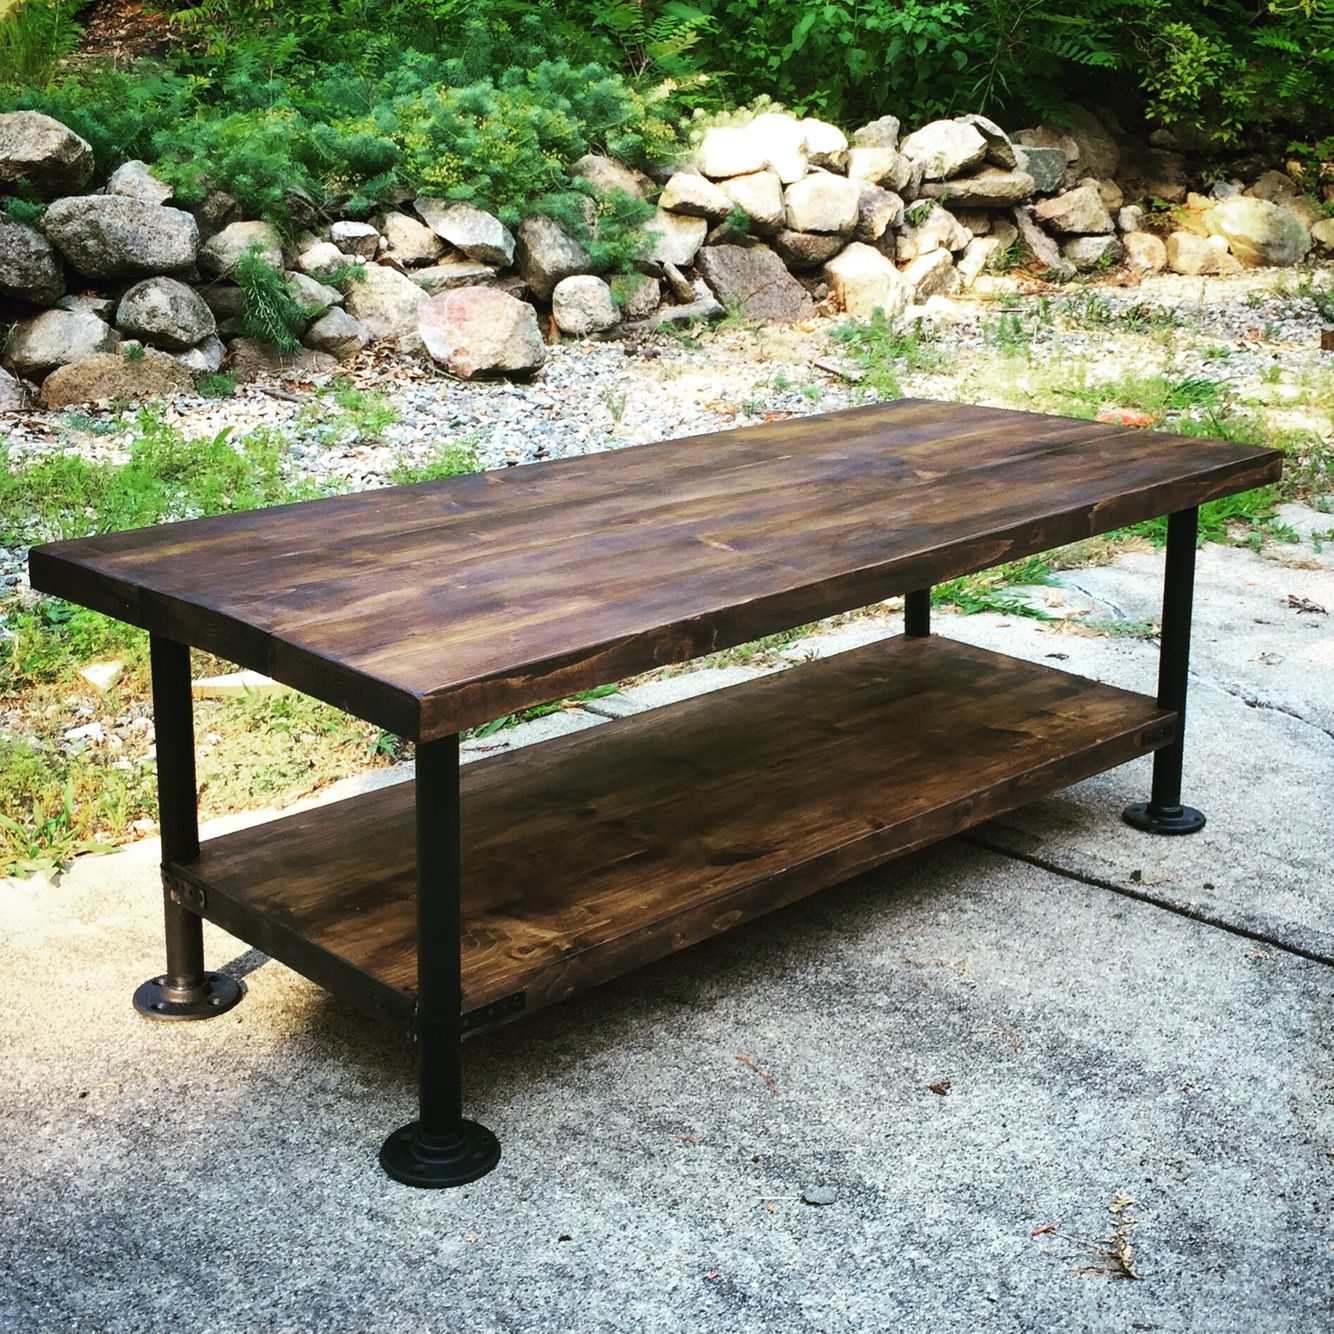 Industrial Coffee Table Industrial Style Wood Coffee Table With Steel Pipe Legs